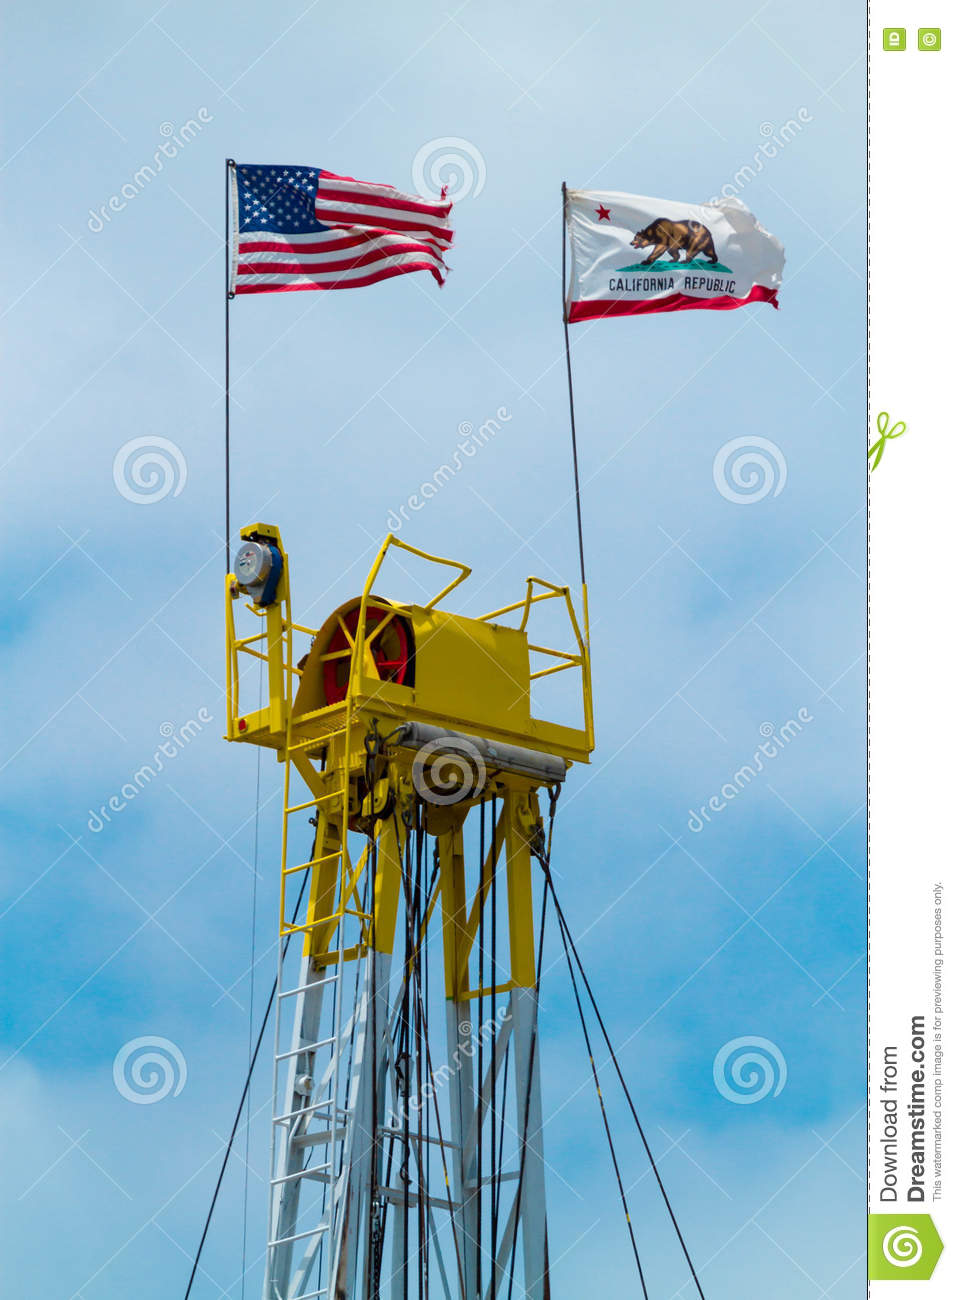 Top del aceite Rig Displaying los E.E.U.U. y de la bandera del estado de California